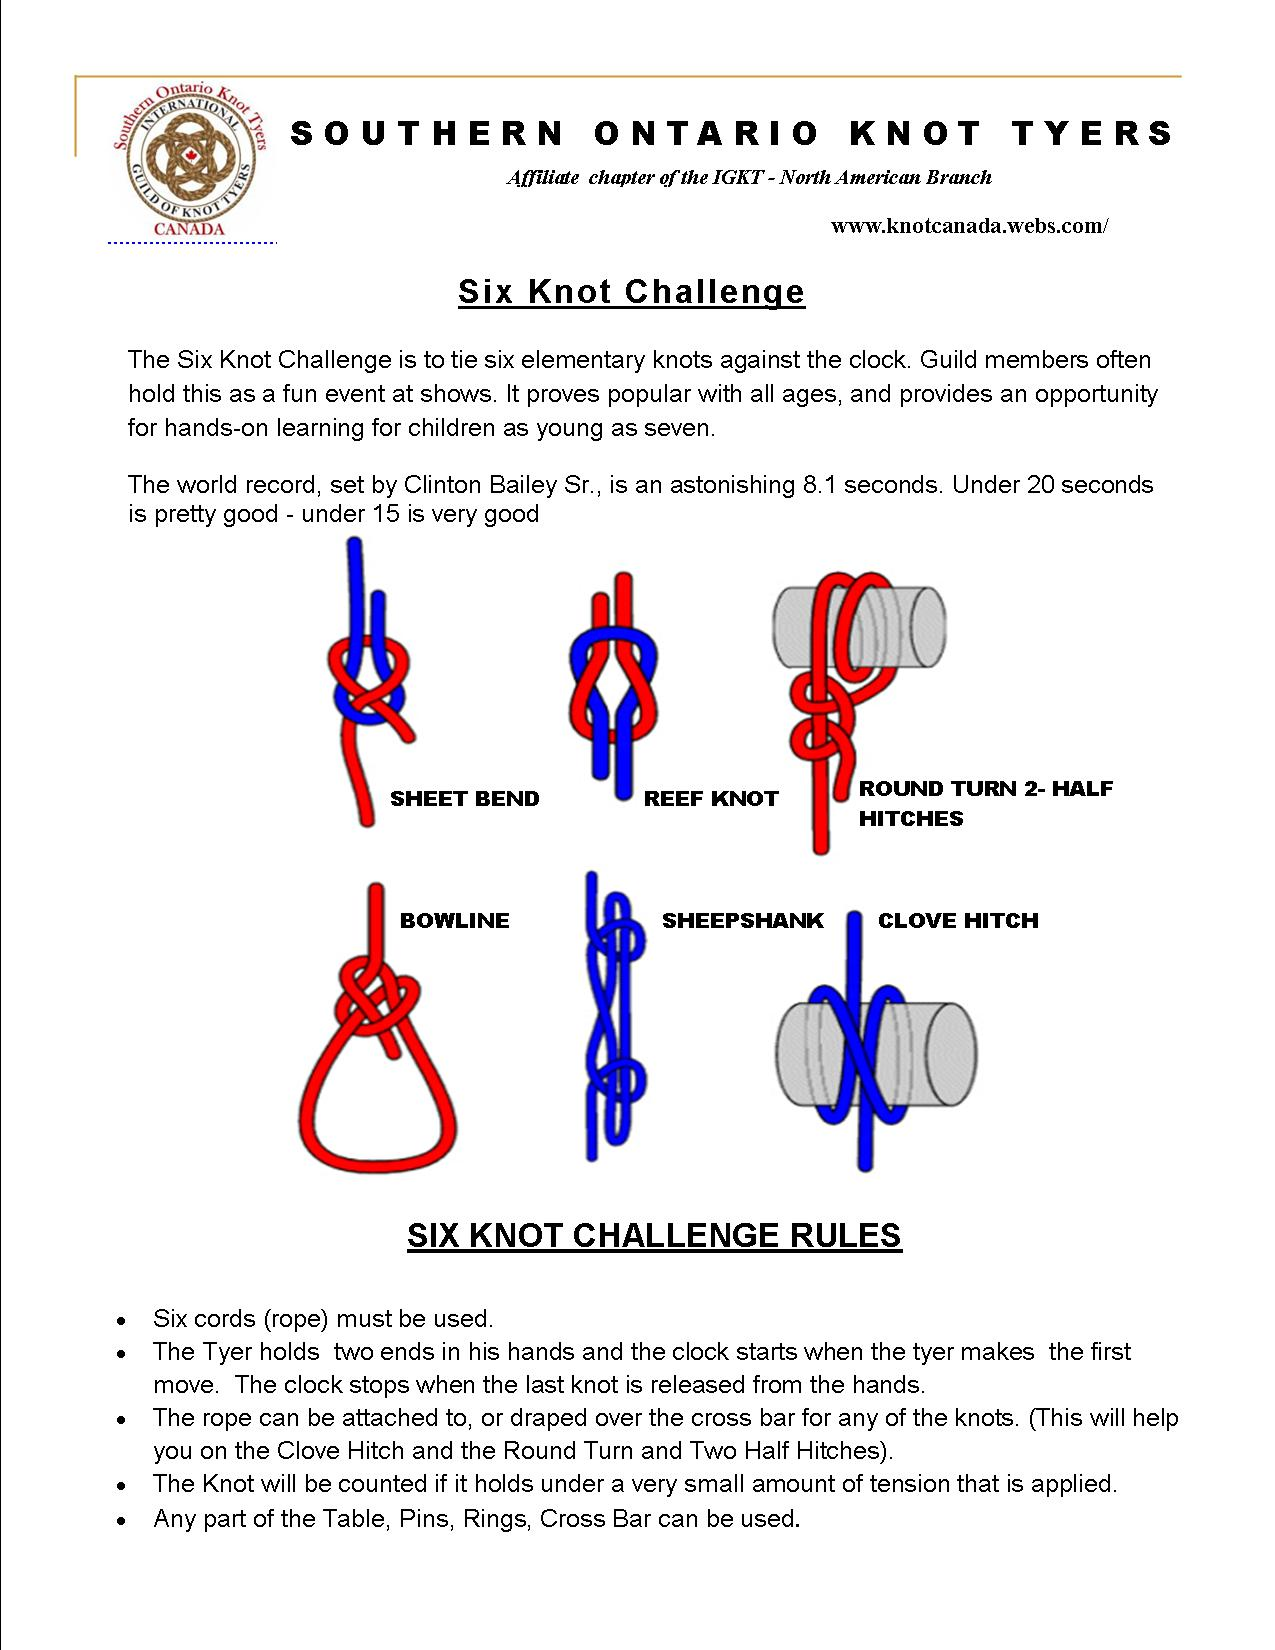 The Six Knot Challenge (Image Credit: Knot Canada)